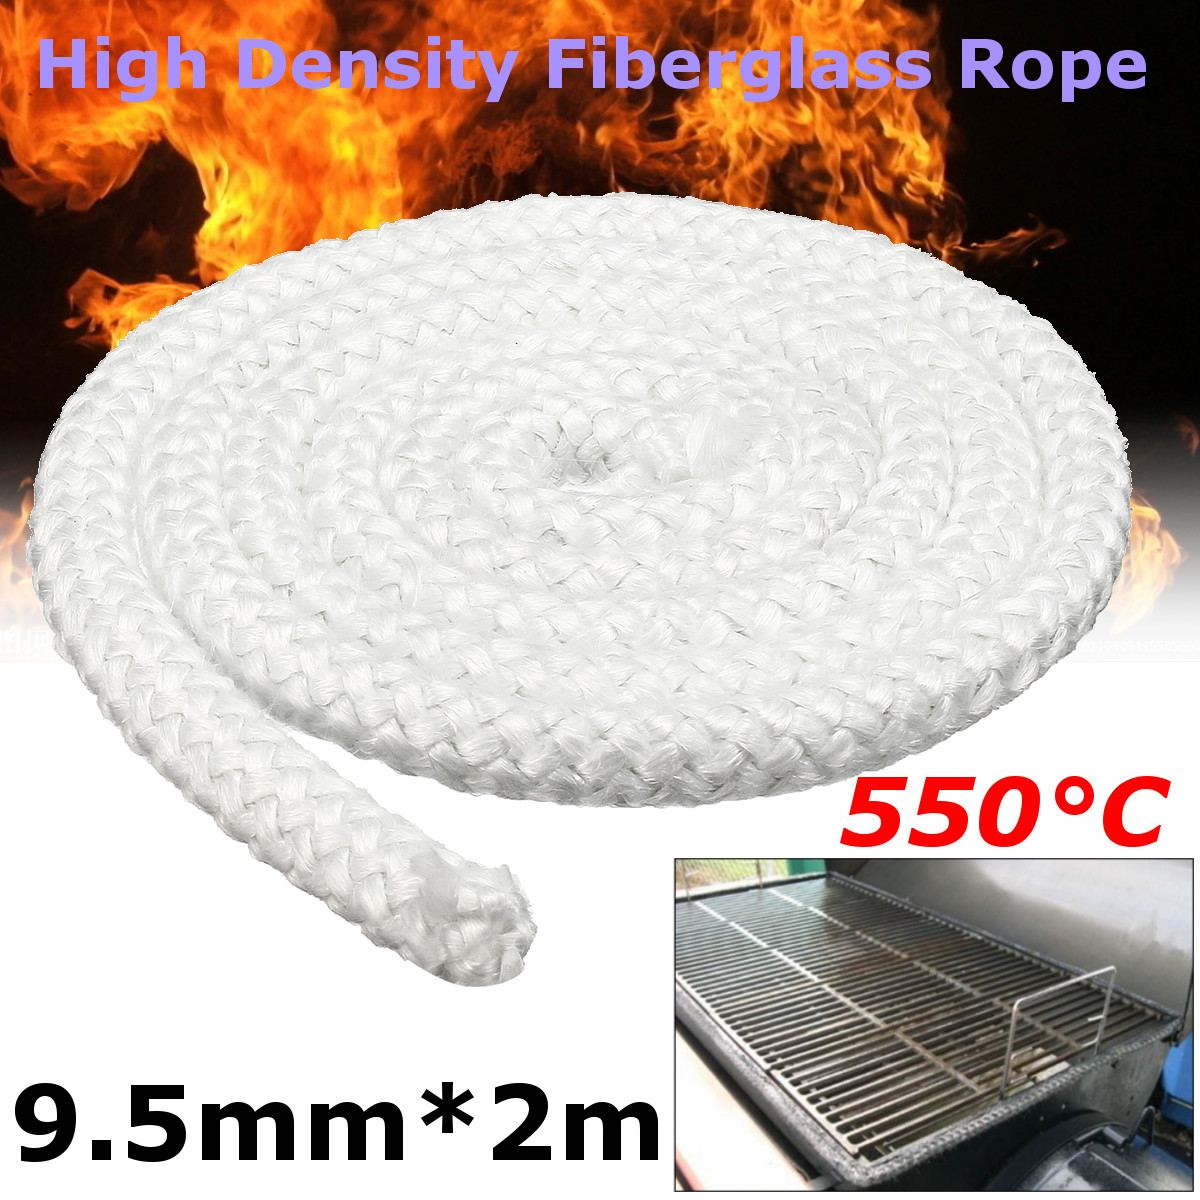 2mx9.5mm White High Density Fibreglass Rope Wood Stove Heater Door Seal Gasket Anti Temperature Commercial Heater Oven Part New